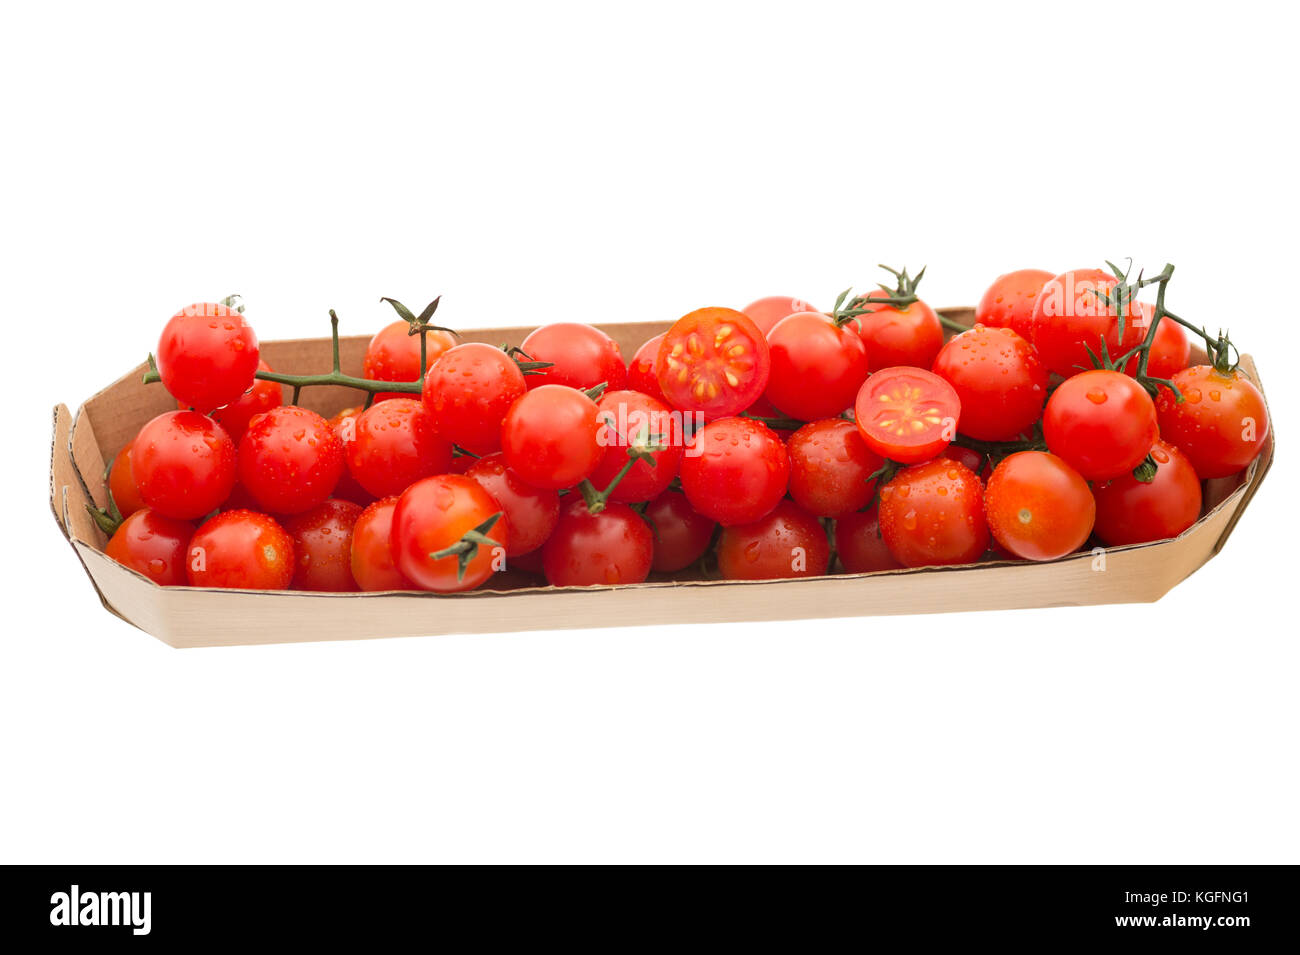 Fresh organic red cocktail tomatoes in a tray, isolated on white background. - Stock Image